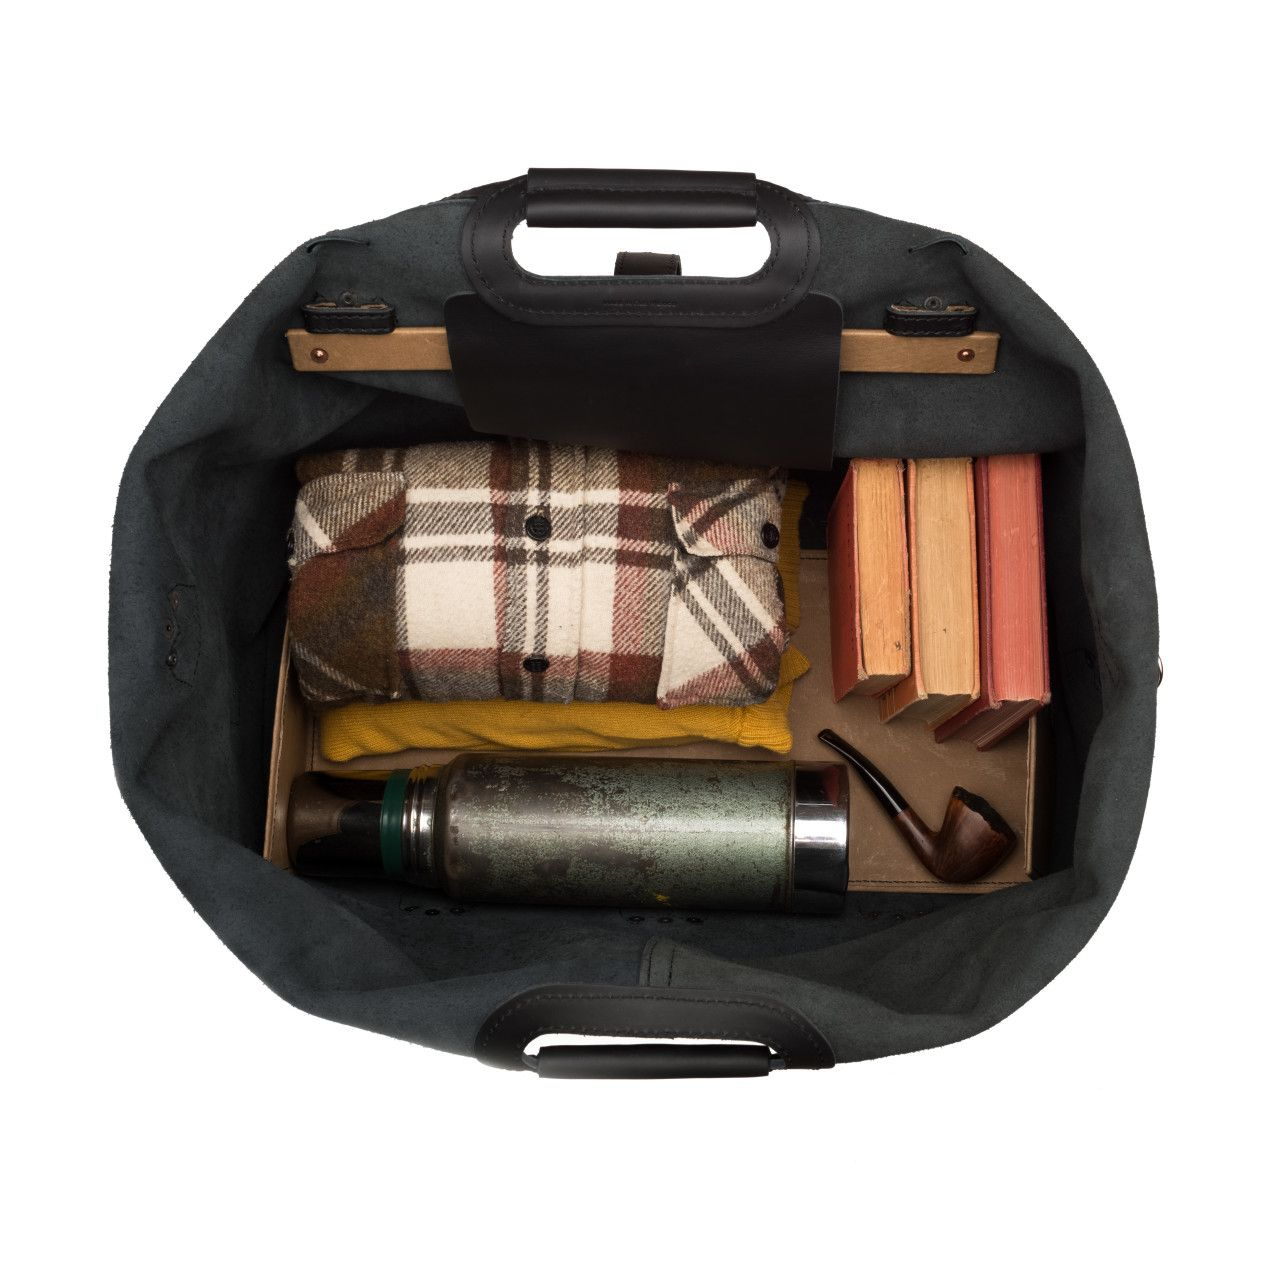 inside the waterbag premium leather duffel bag medium in black leather are shirts, shoes, books, thermo and pipe